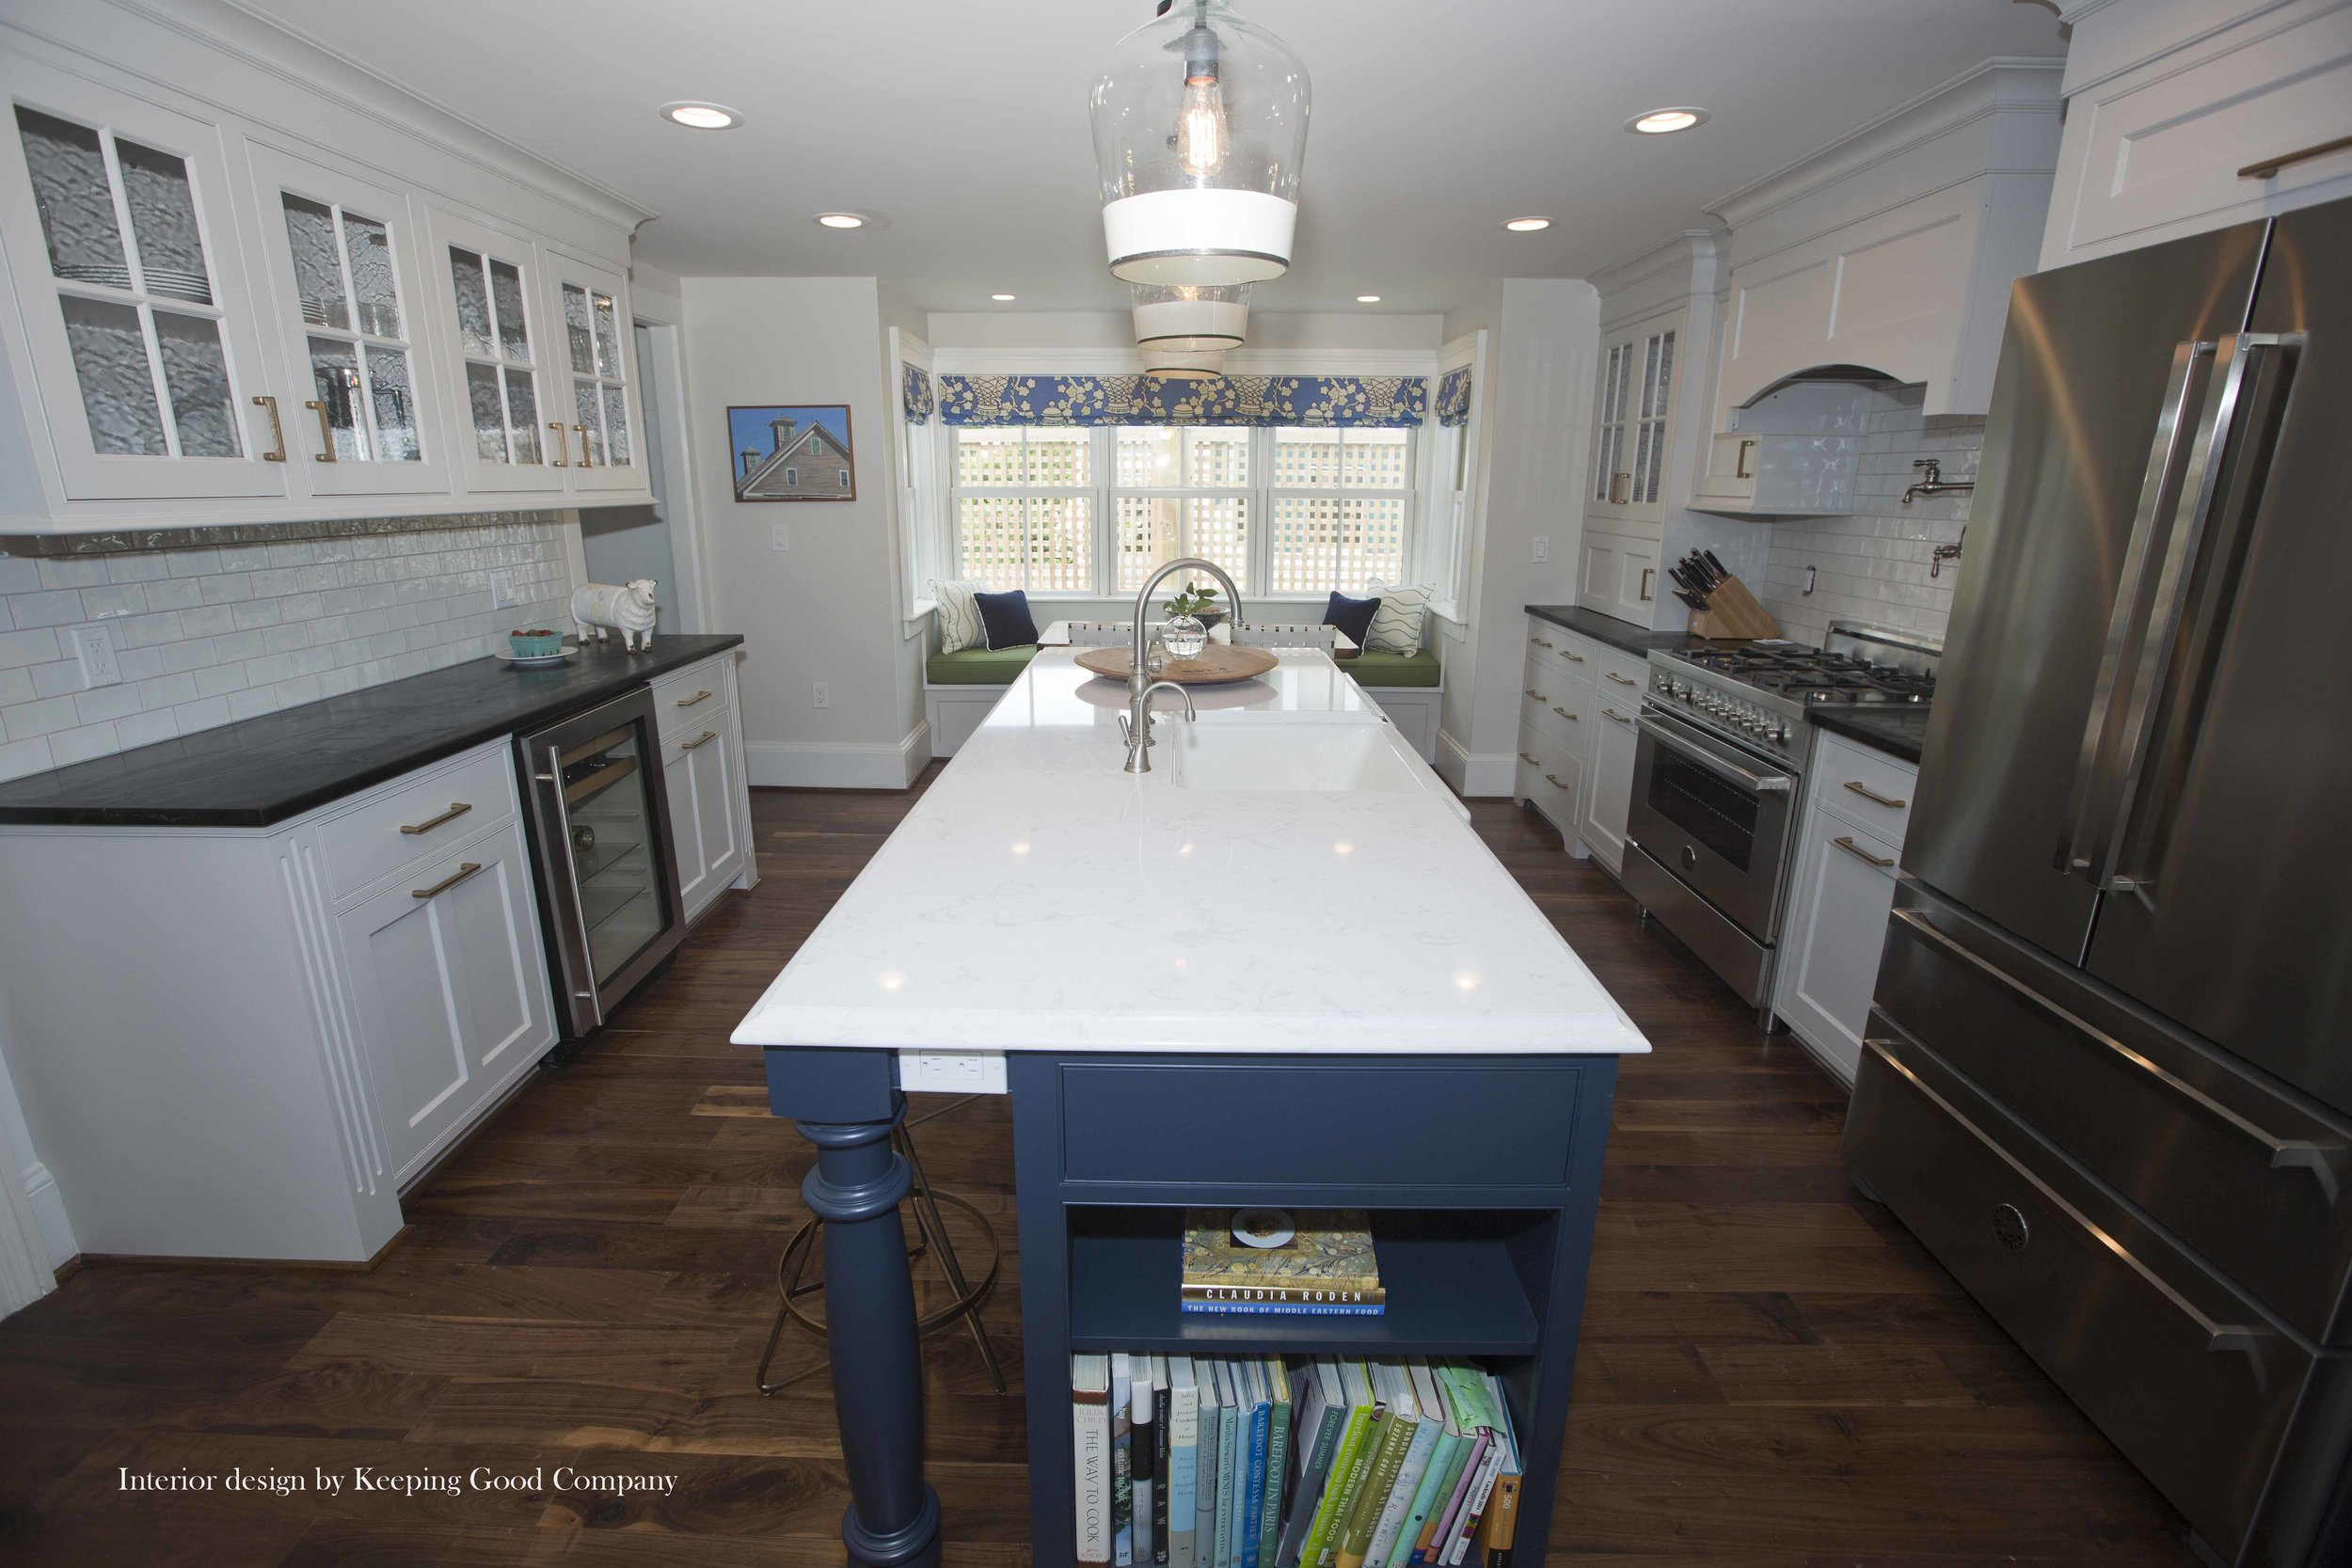 Soapstone Countertops,Under Counter Beverage Refrigeration,Island End Bookcase and Turned Legs,